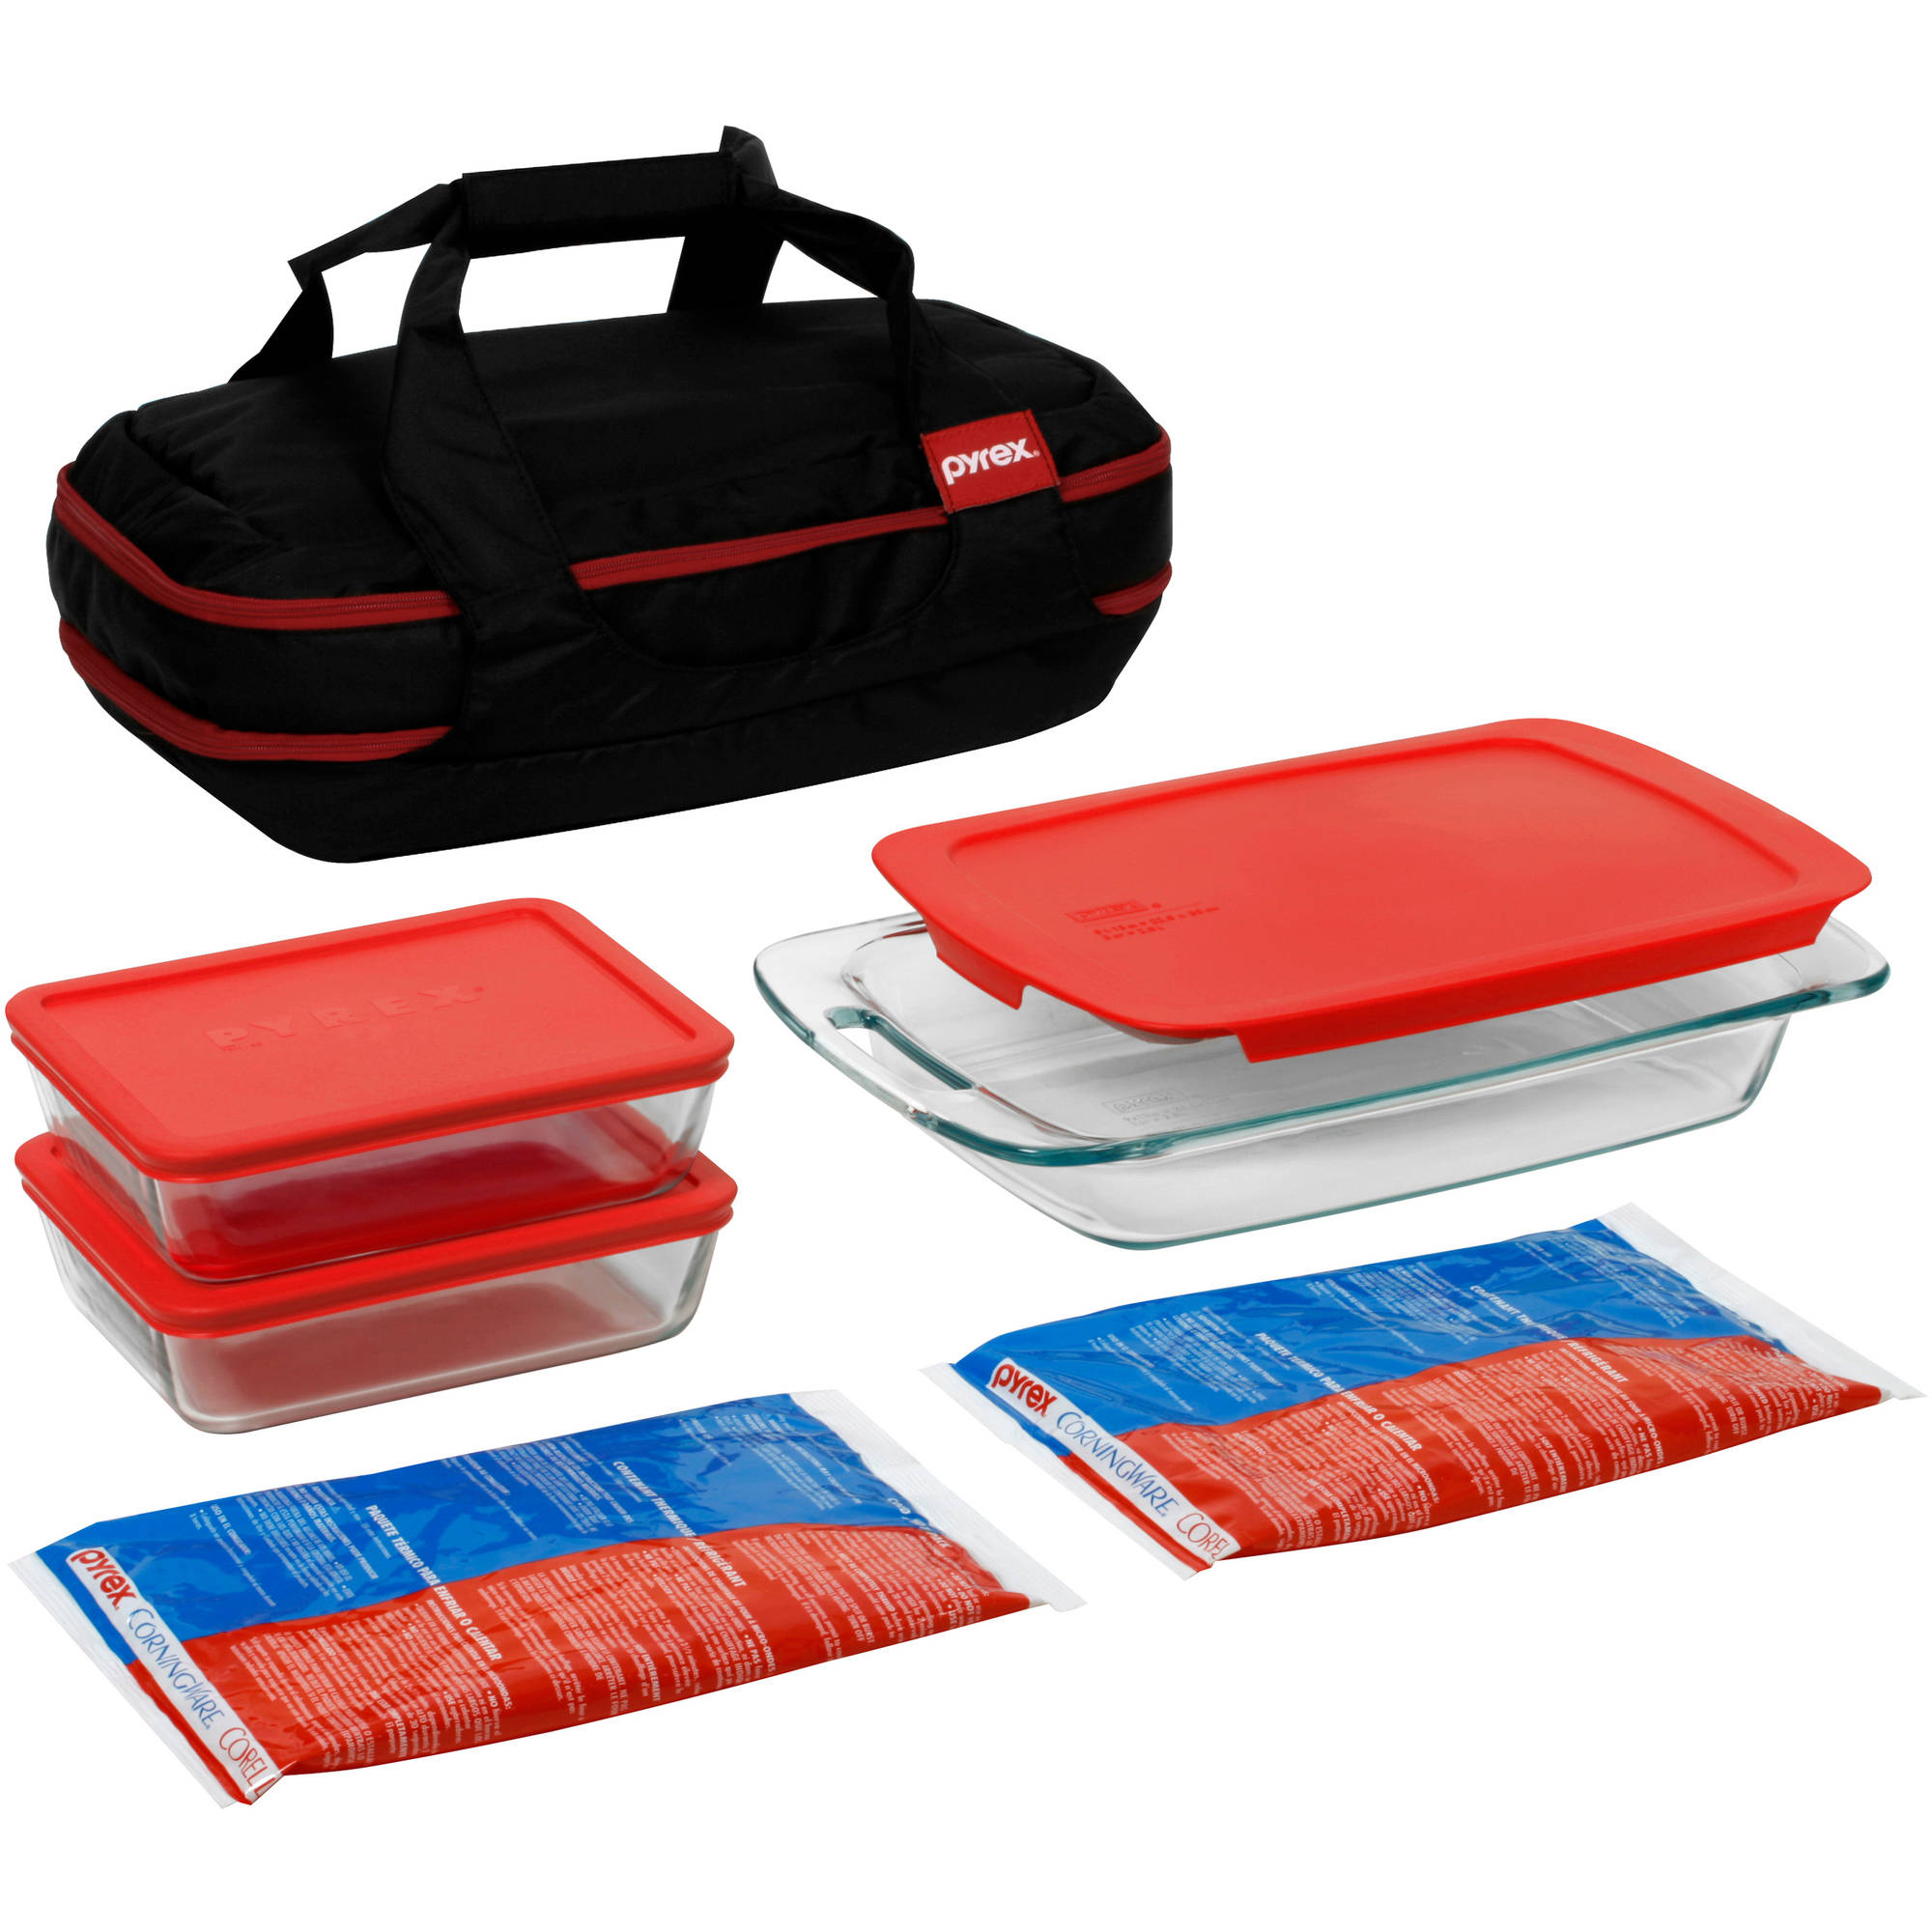 Pyrex 9-Piece Portable Double Decker Set with Carrier, Glass